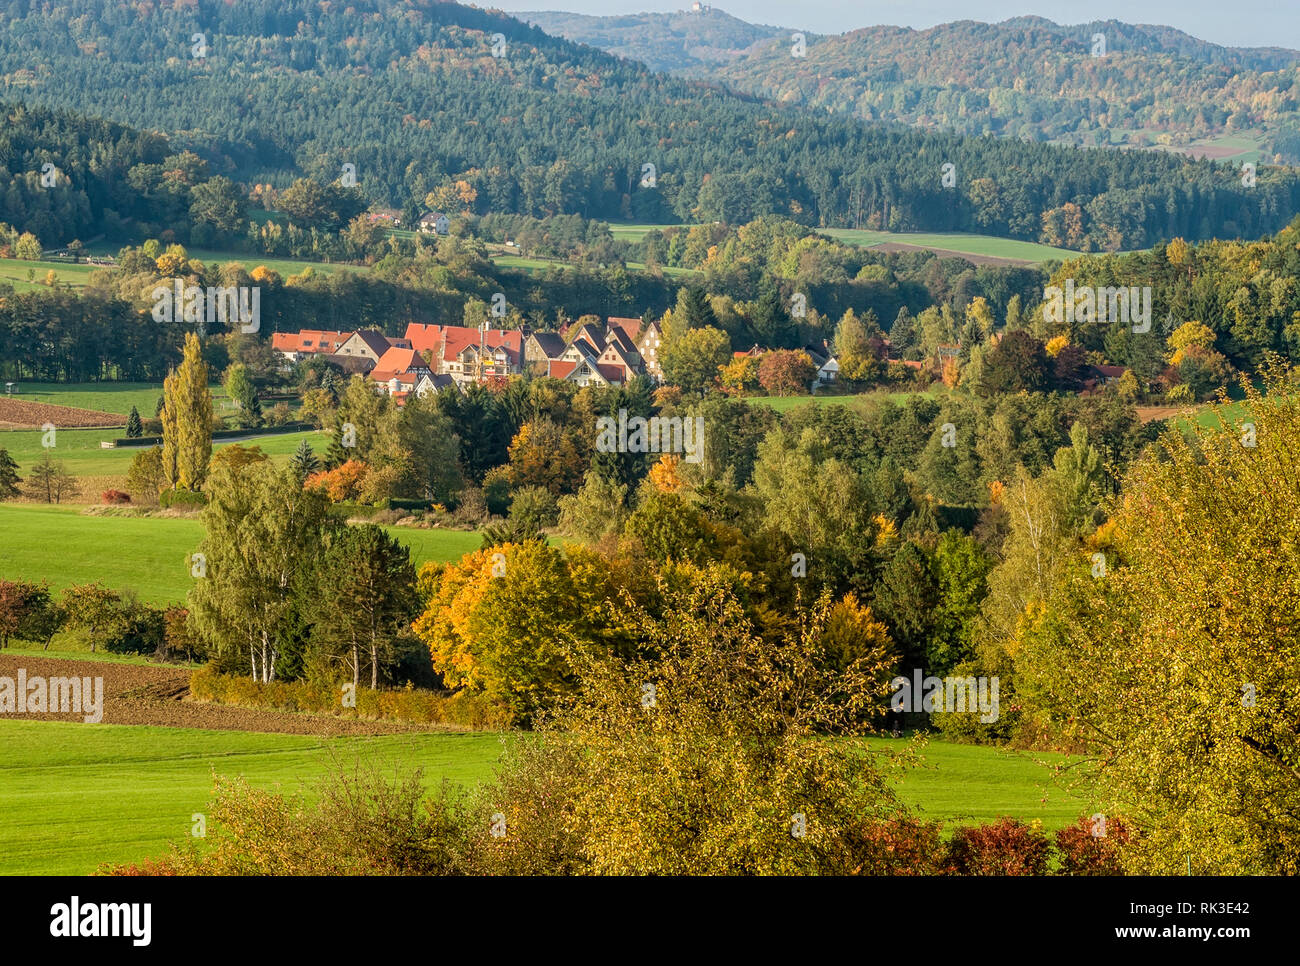 Farbenfrohe Herbstlandschaft im Naturpark Hersbrucker Schweiz, Bayern, Deutschland | Colorful Autumn Landscape with view over Hersbruck - Stock Image